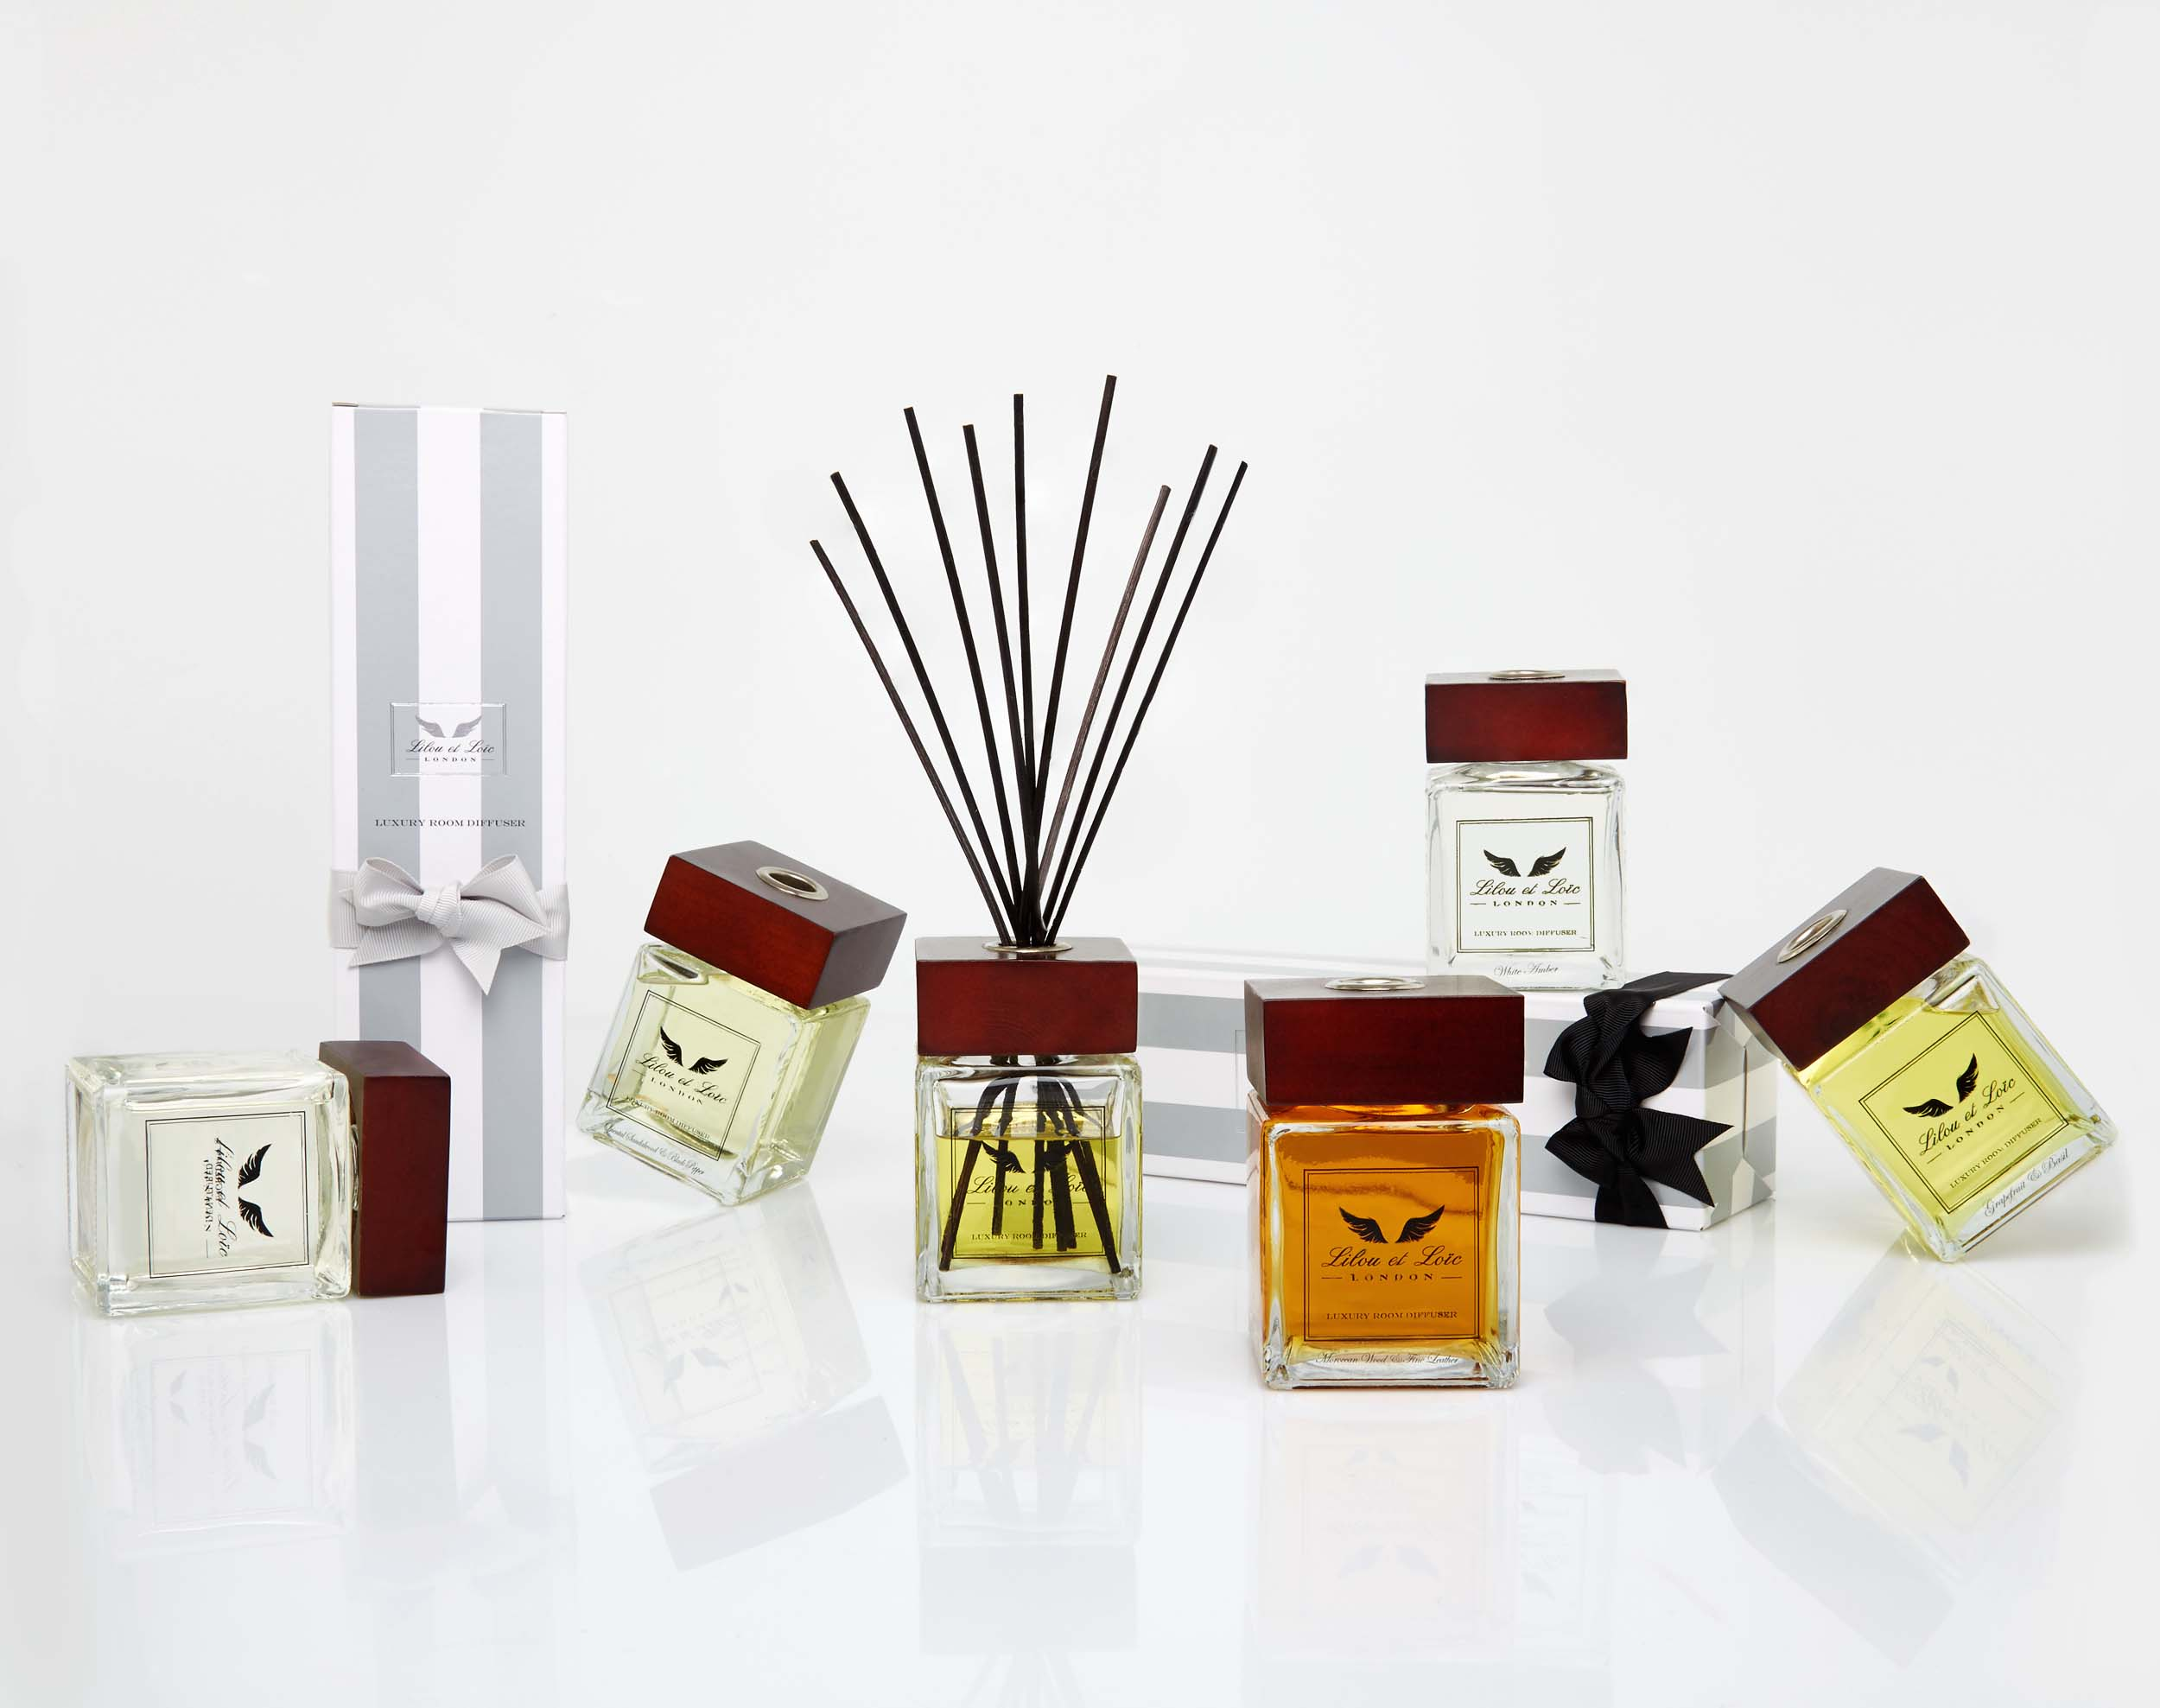 Room diffusers - images courtesy of Amara